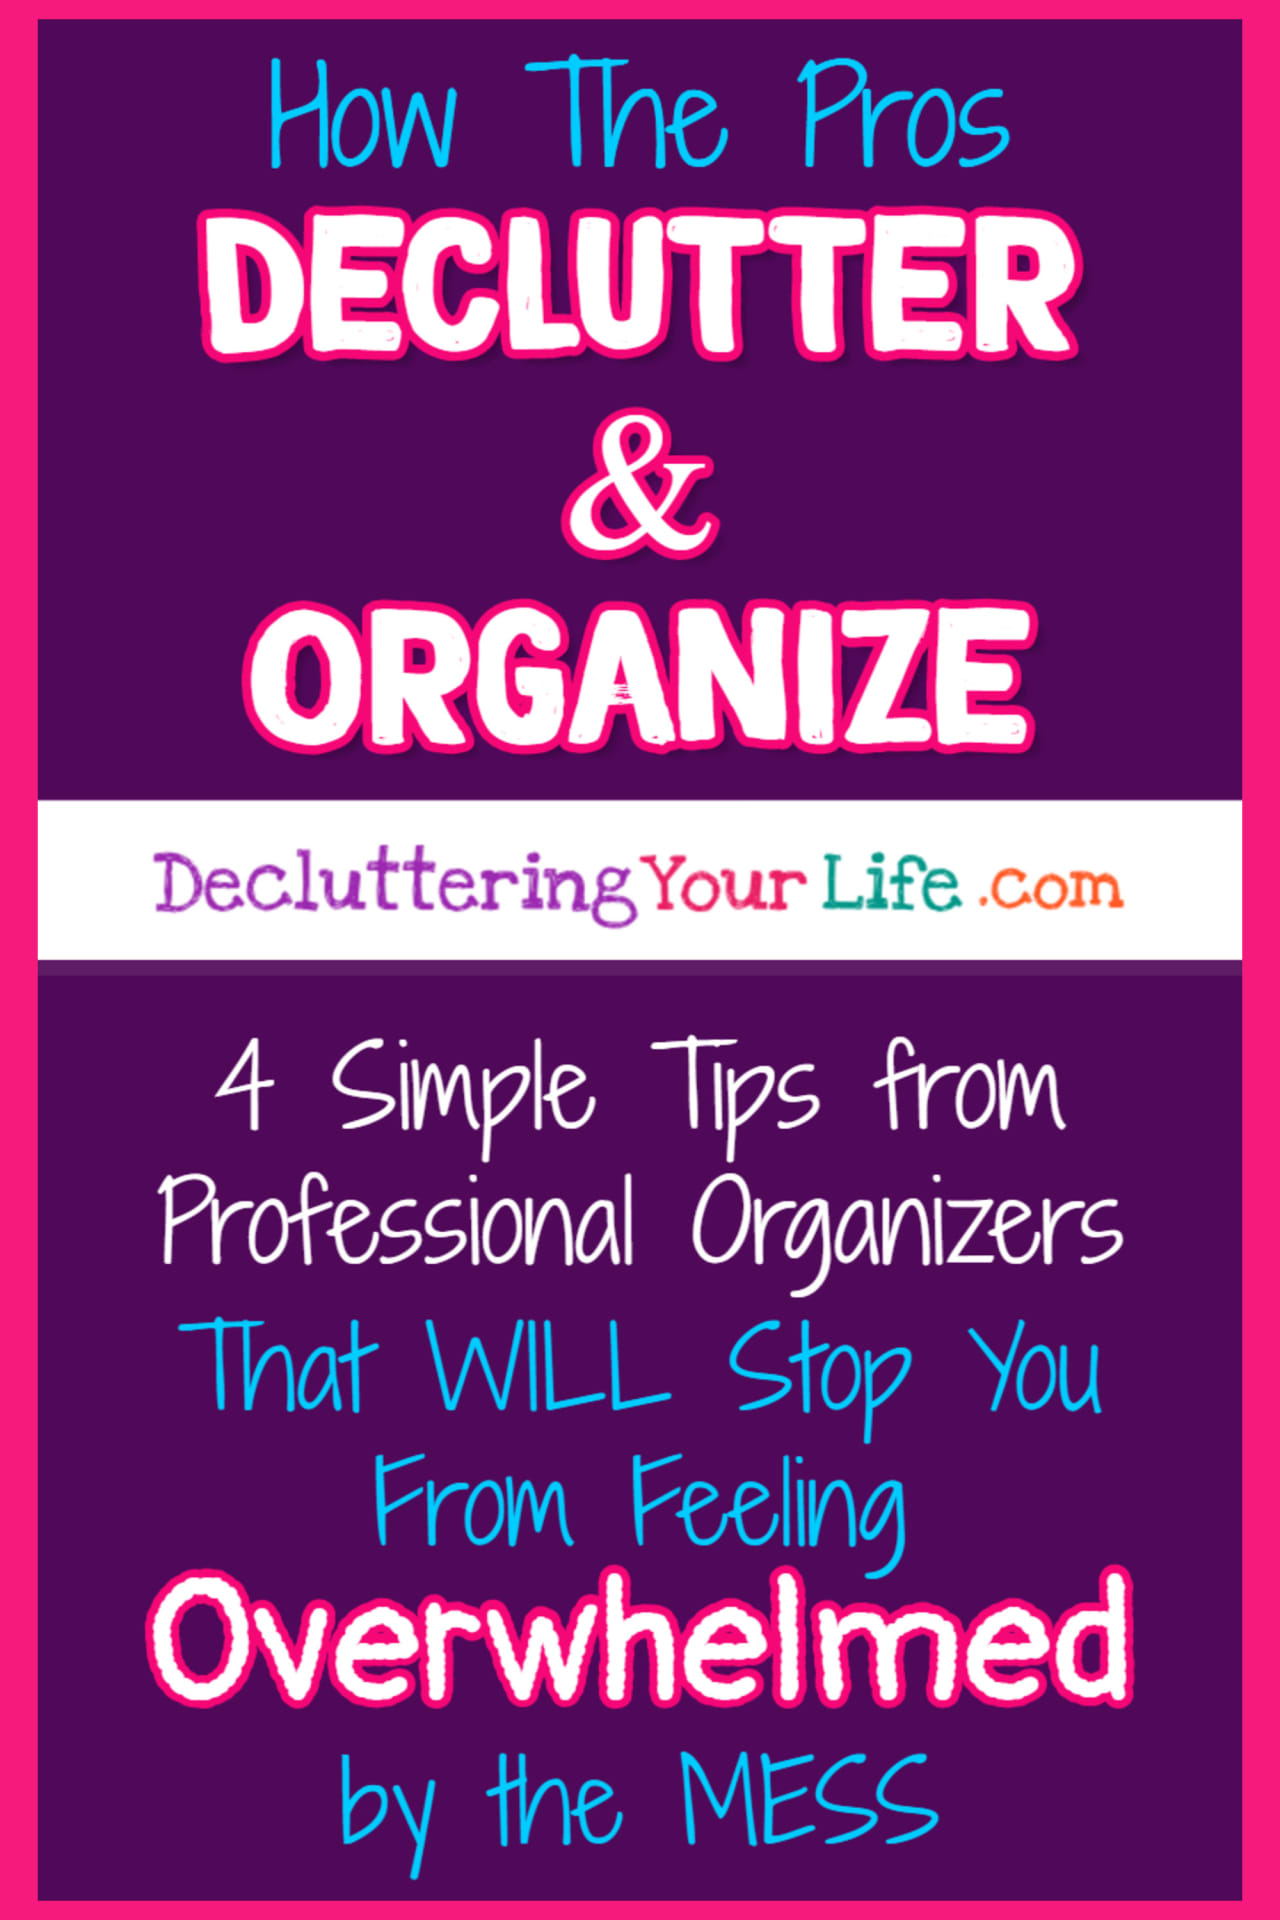 Tips from Professional Organizers: Decluttering and organizing all the CLUTTER is overwhelming - heck, clutter causes anxiety for many.  Here are organization tips from Professional Organizers to help you clean and organize your home WITHOUT feeling overwhelmed!